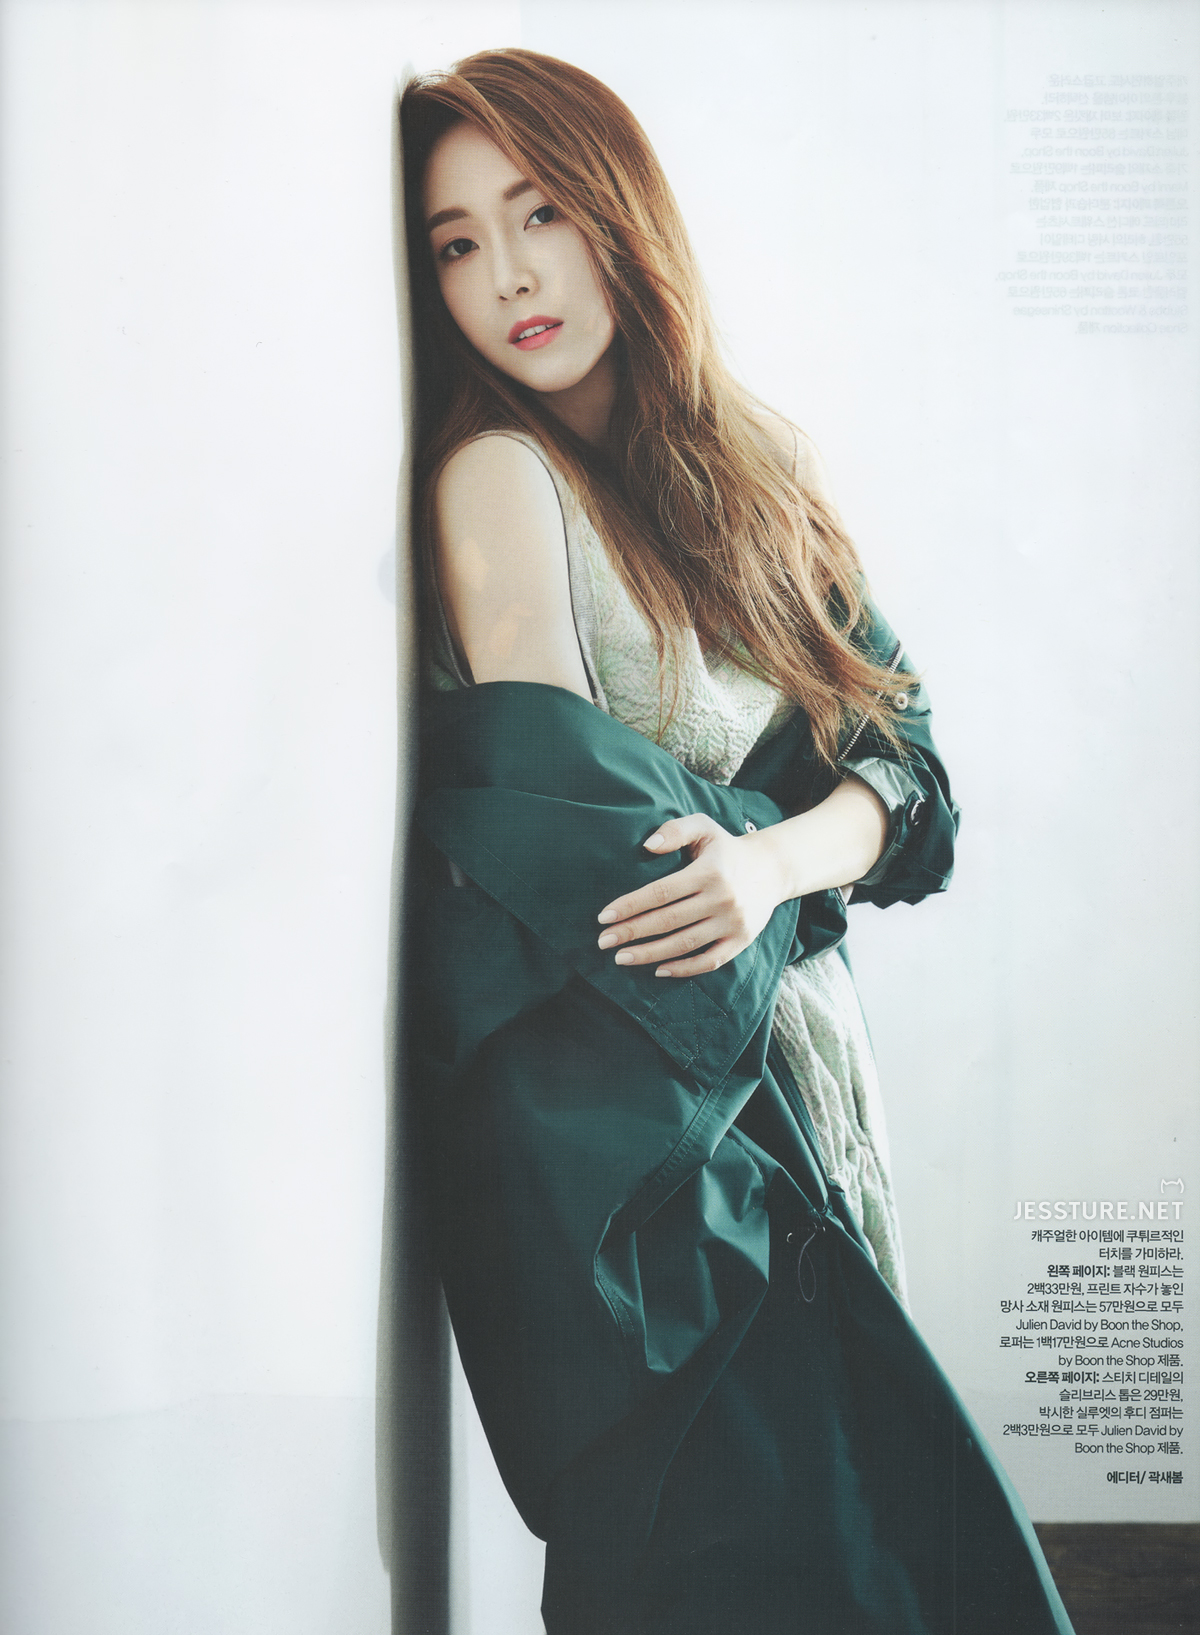 PICT SCAN Jessica Harpers Bazzar May Issue All About Girls